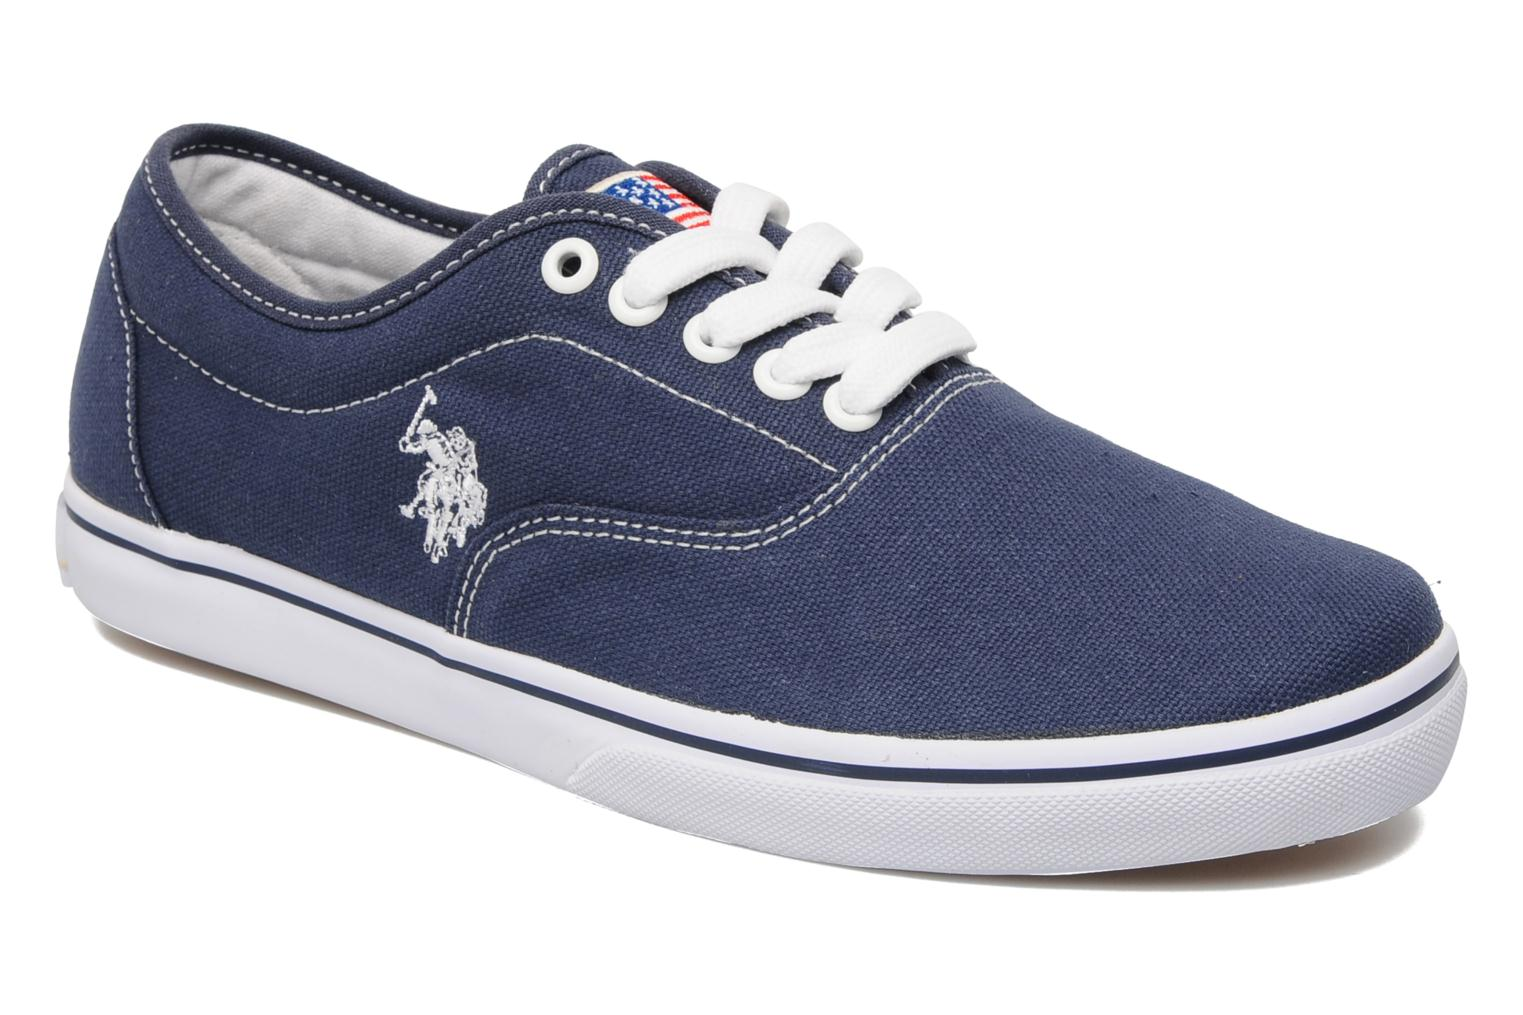 Sneakers Dominic canvas by U.S Polo Assn.